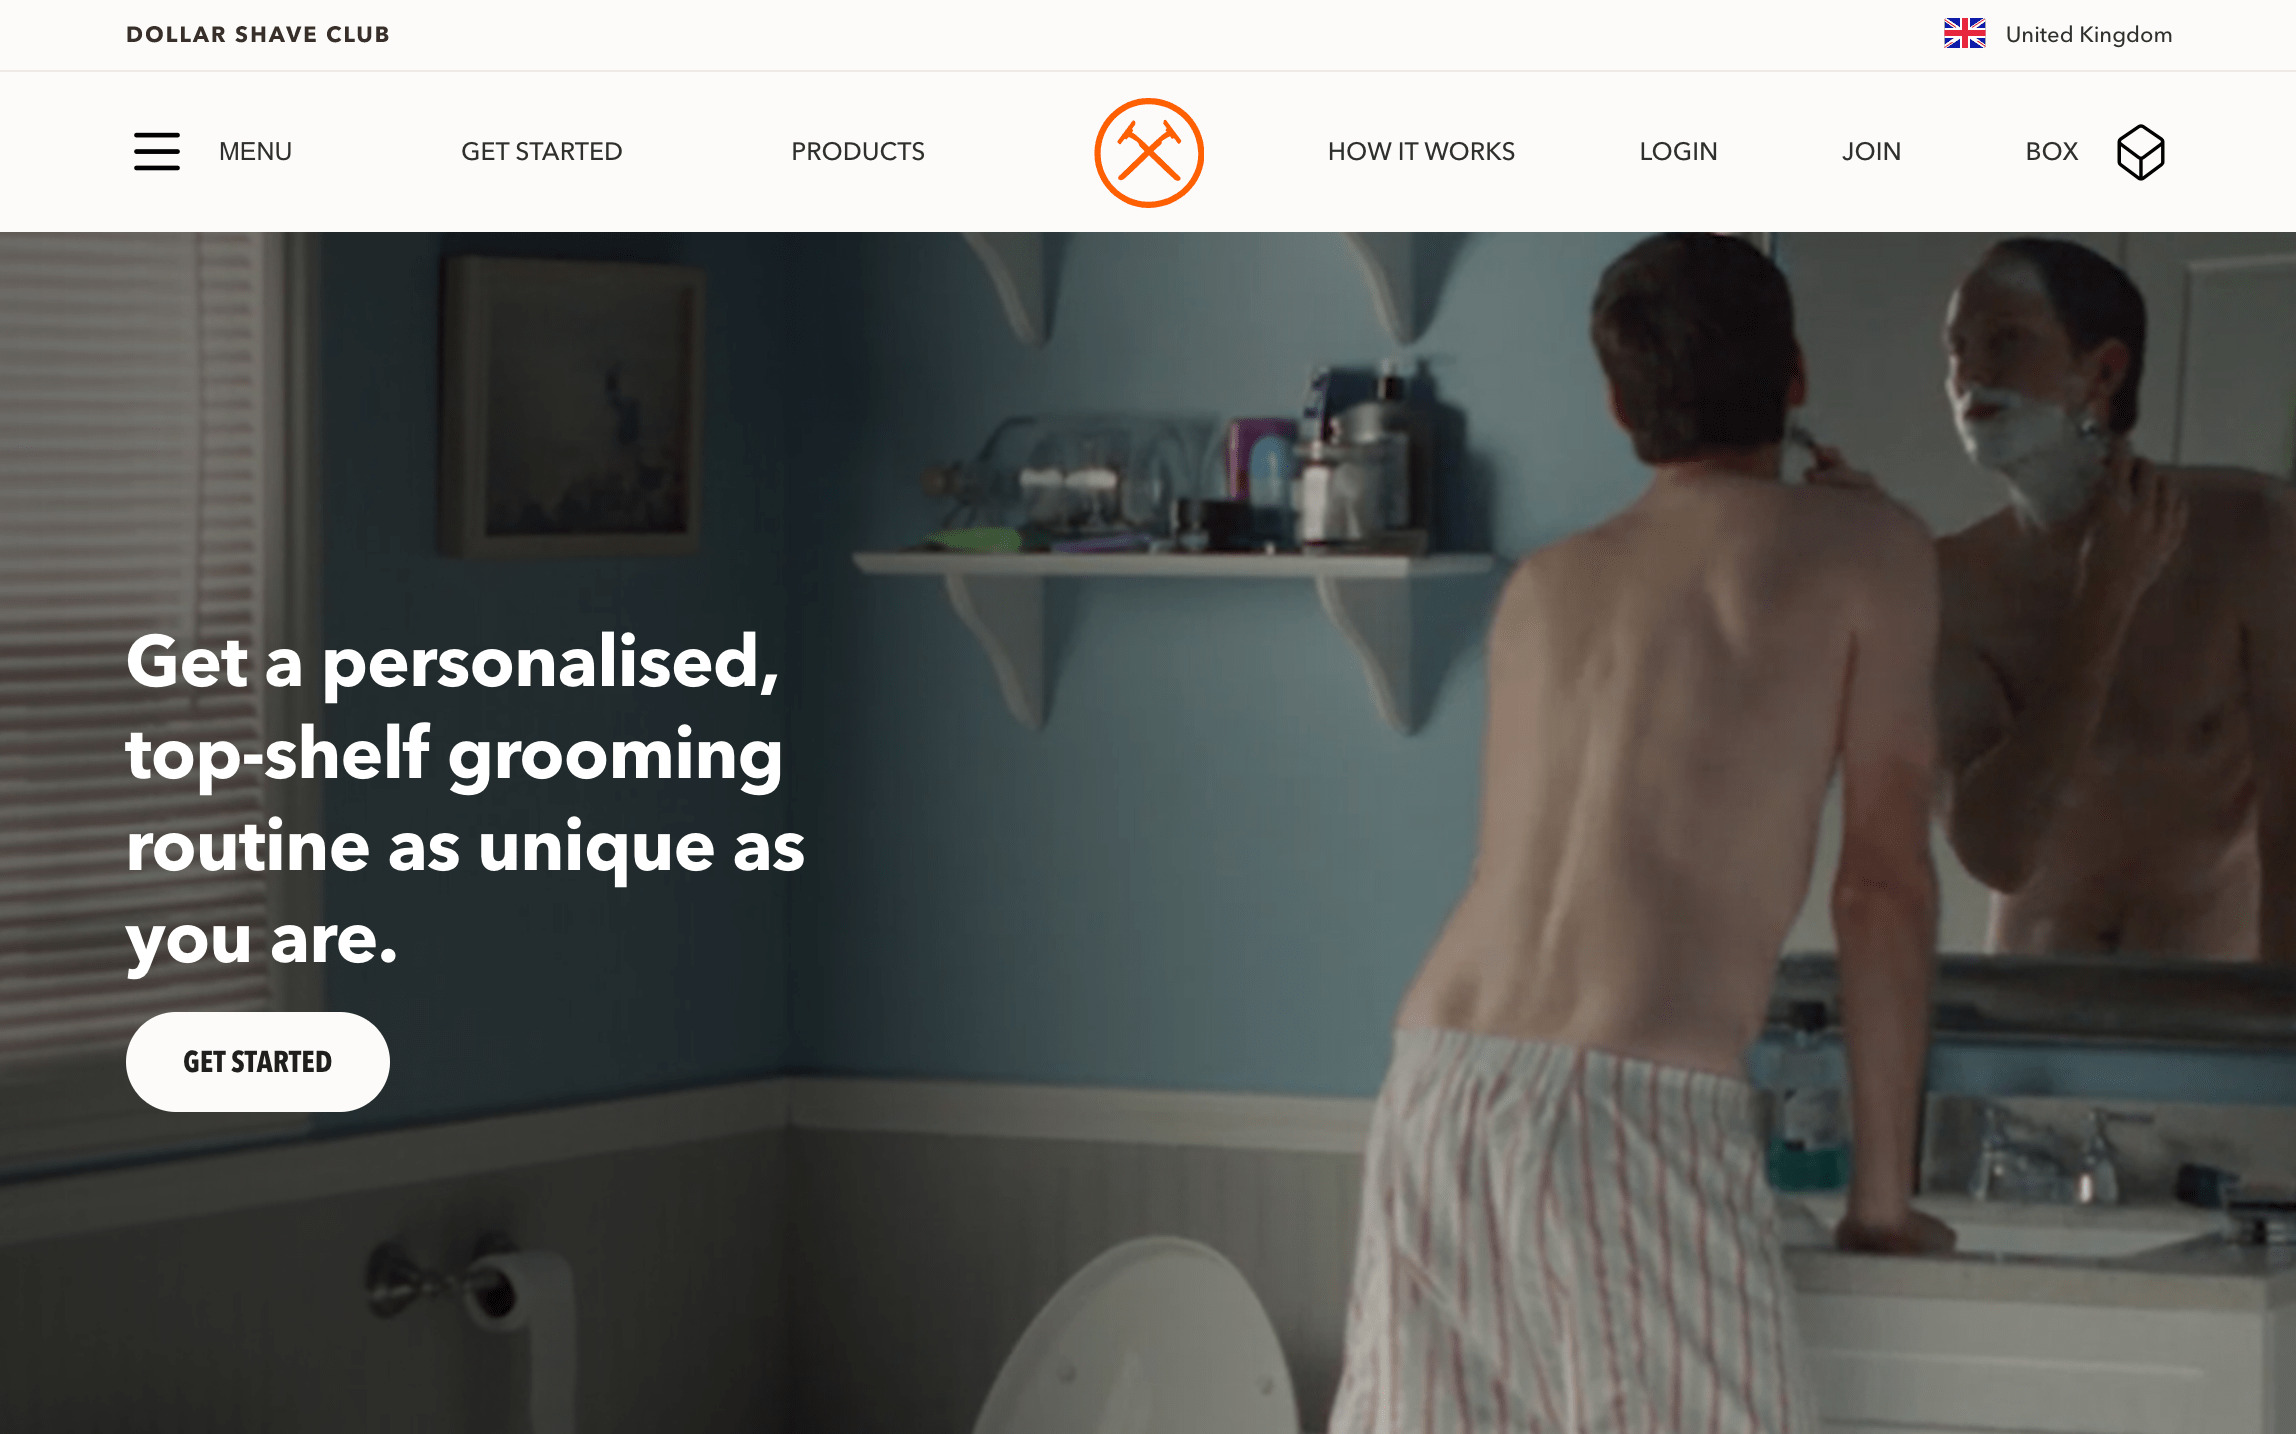 Dollar shave club is a good example of a subscription website